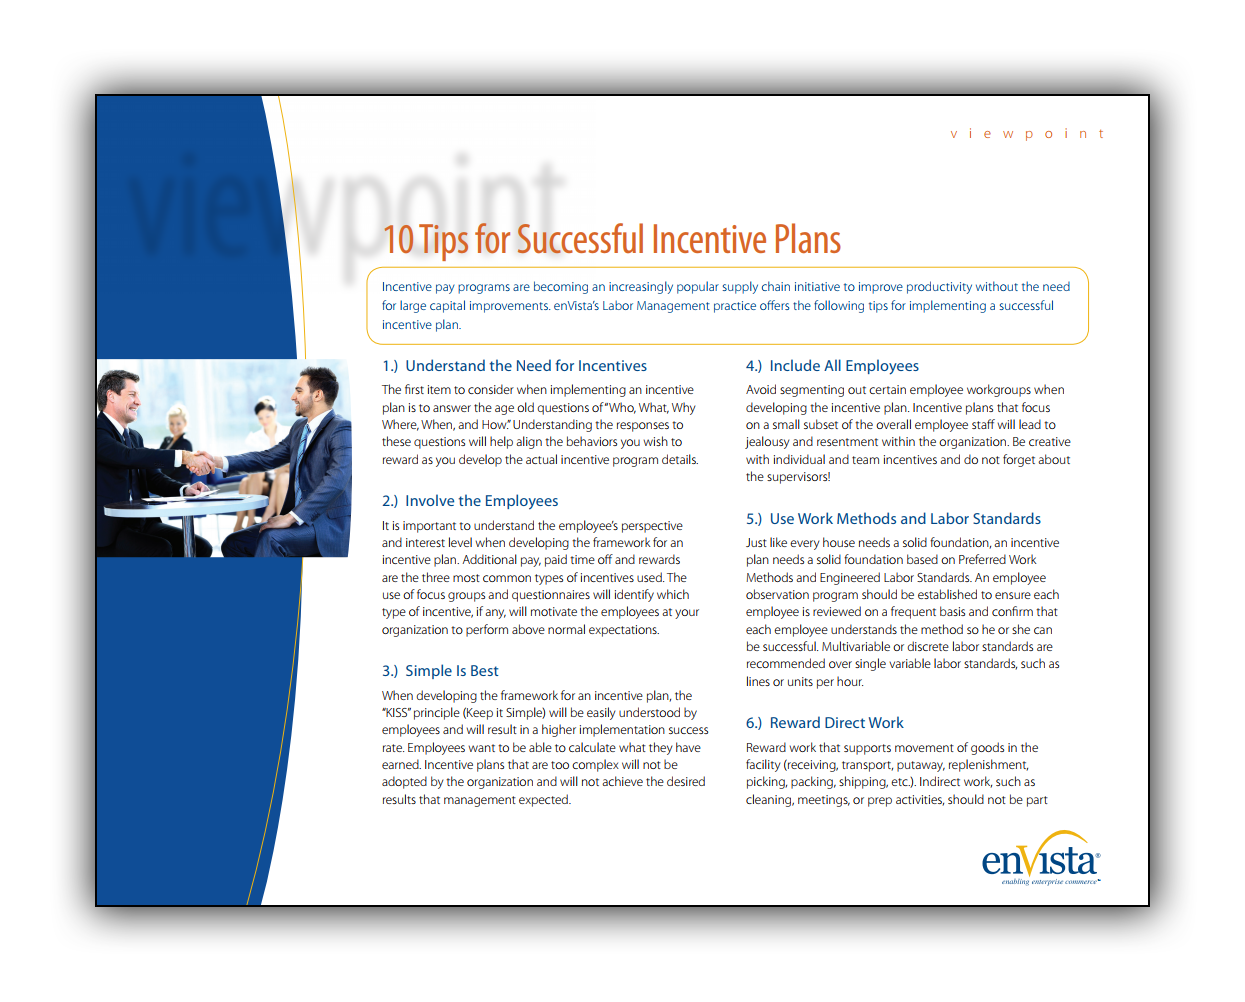 Image_10-tips-for-successful-incentive-plans.png